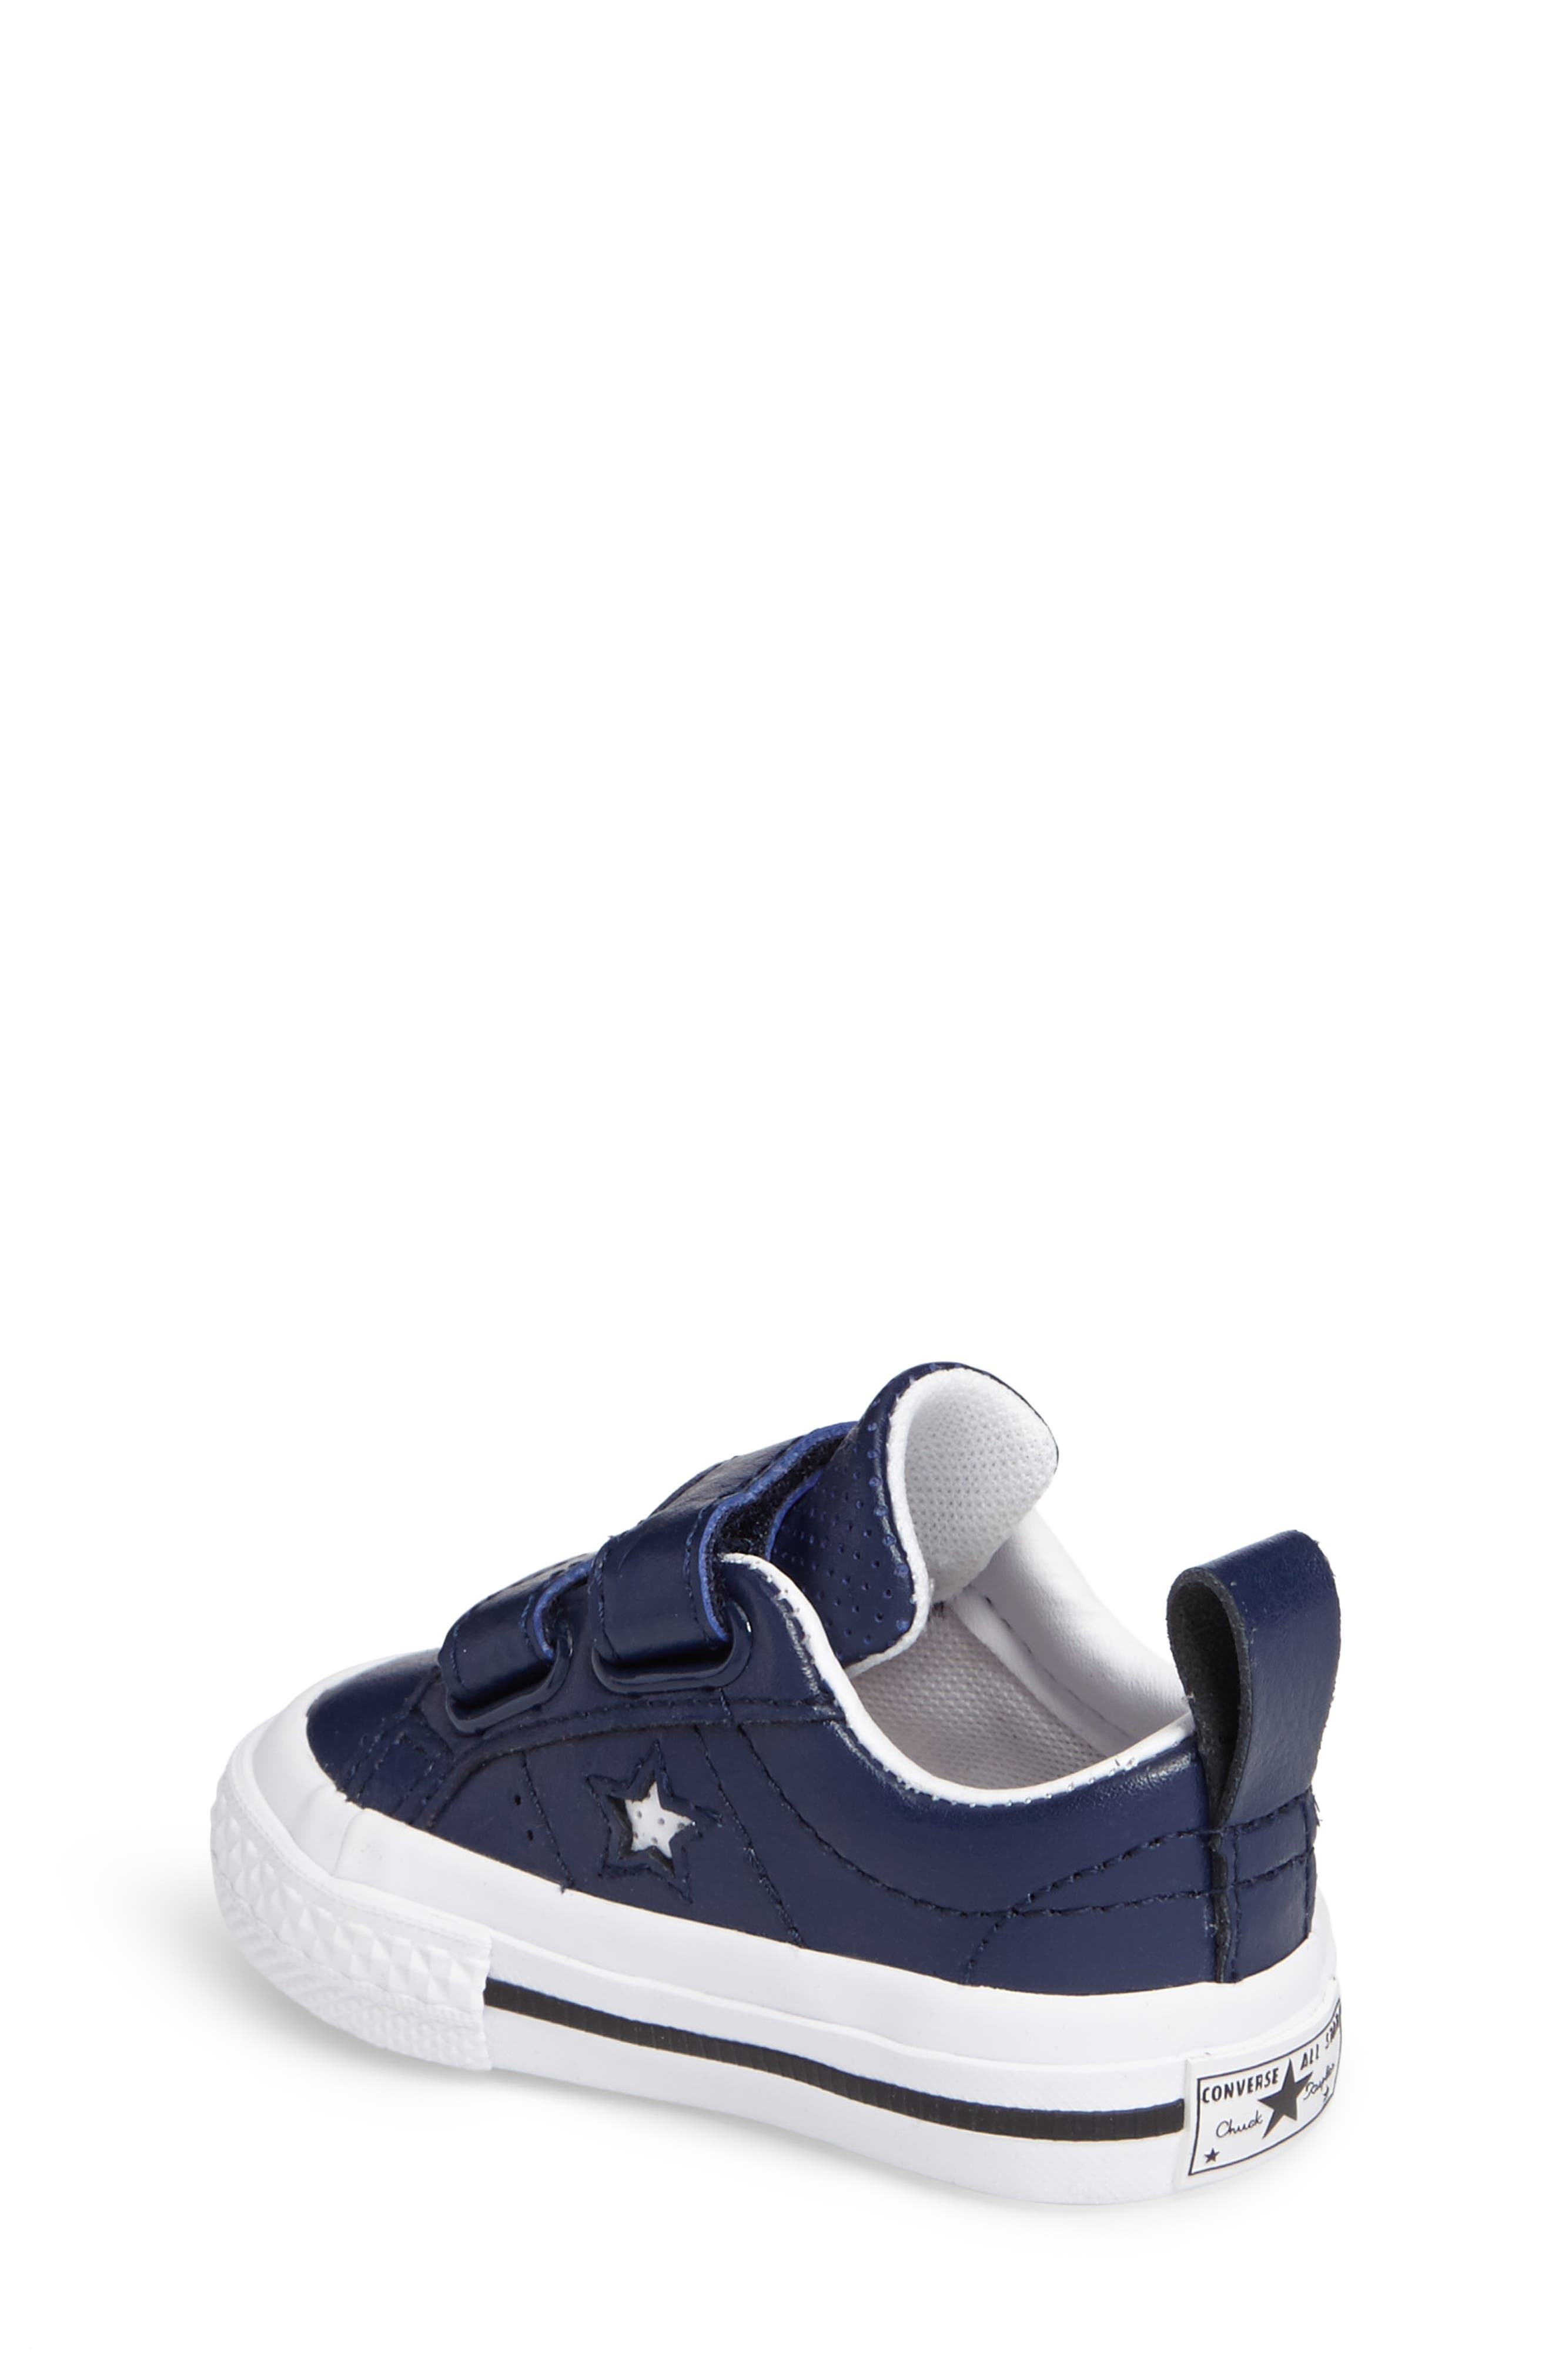 Alternate Image 2  - Converse Chuck Taylor® All Star® One Star Sneaker (Baby, Walker & Toddler)